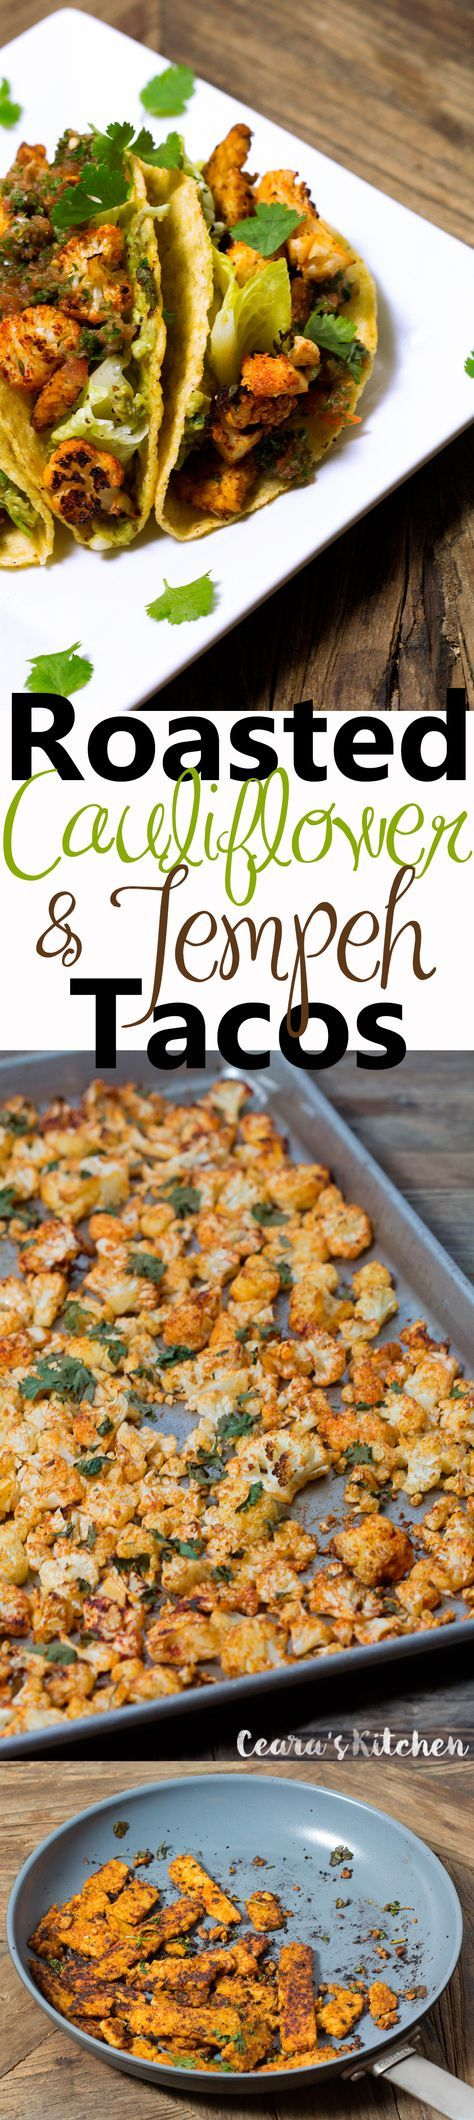 Roasted Cauliflower and Tempeh Tacos